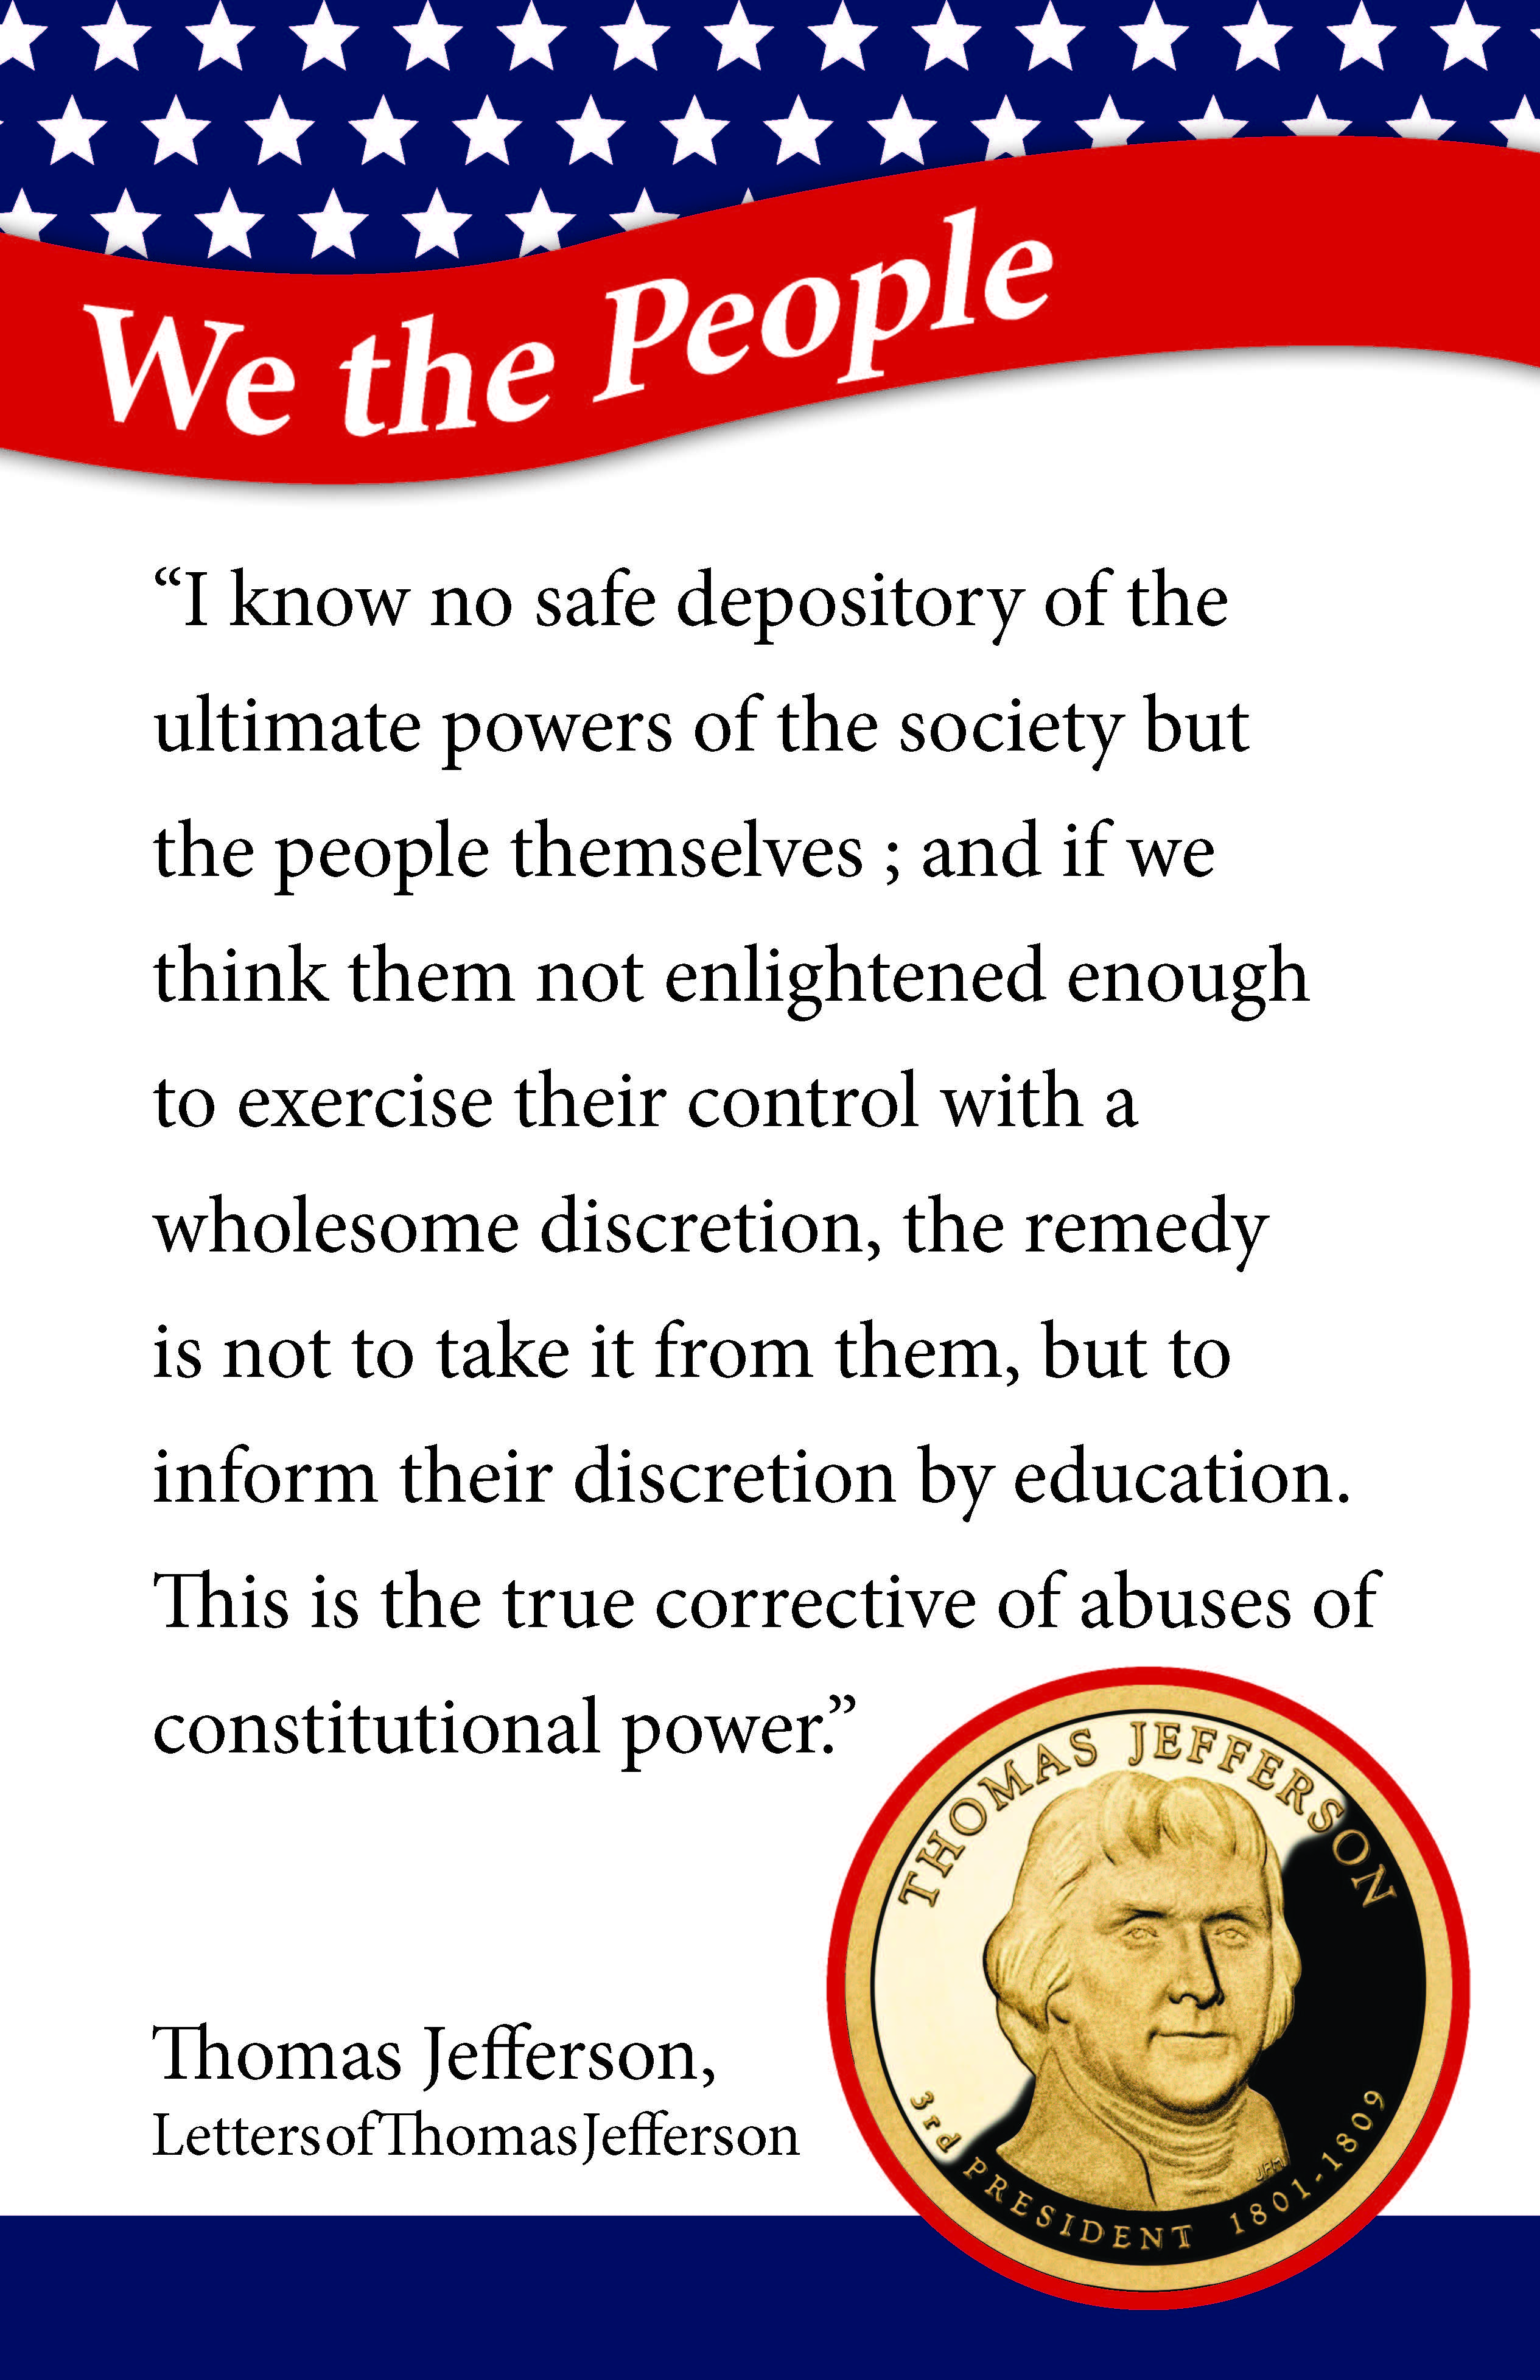 constitution_day_posters_11x17_Page_6